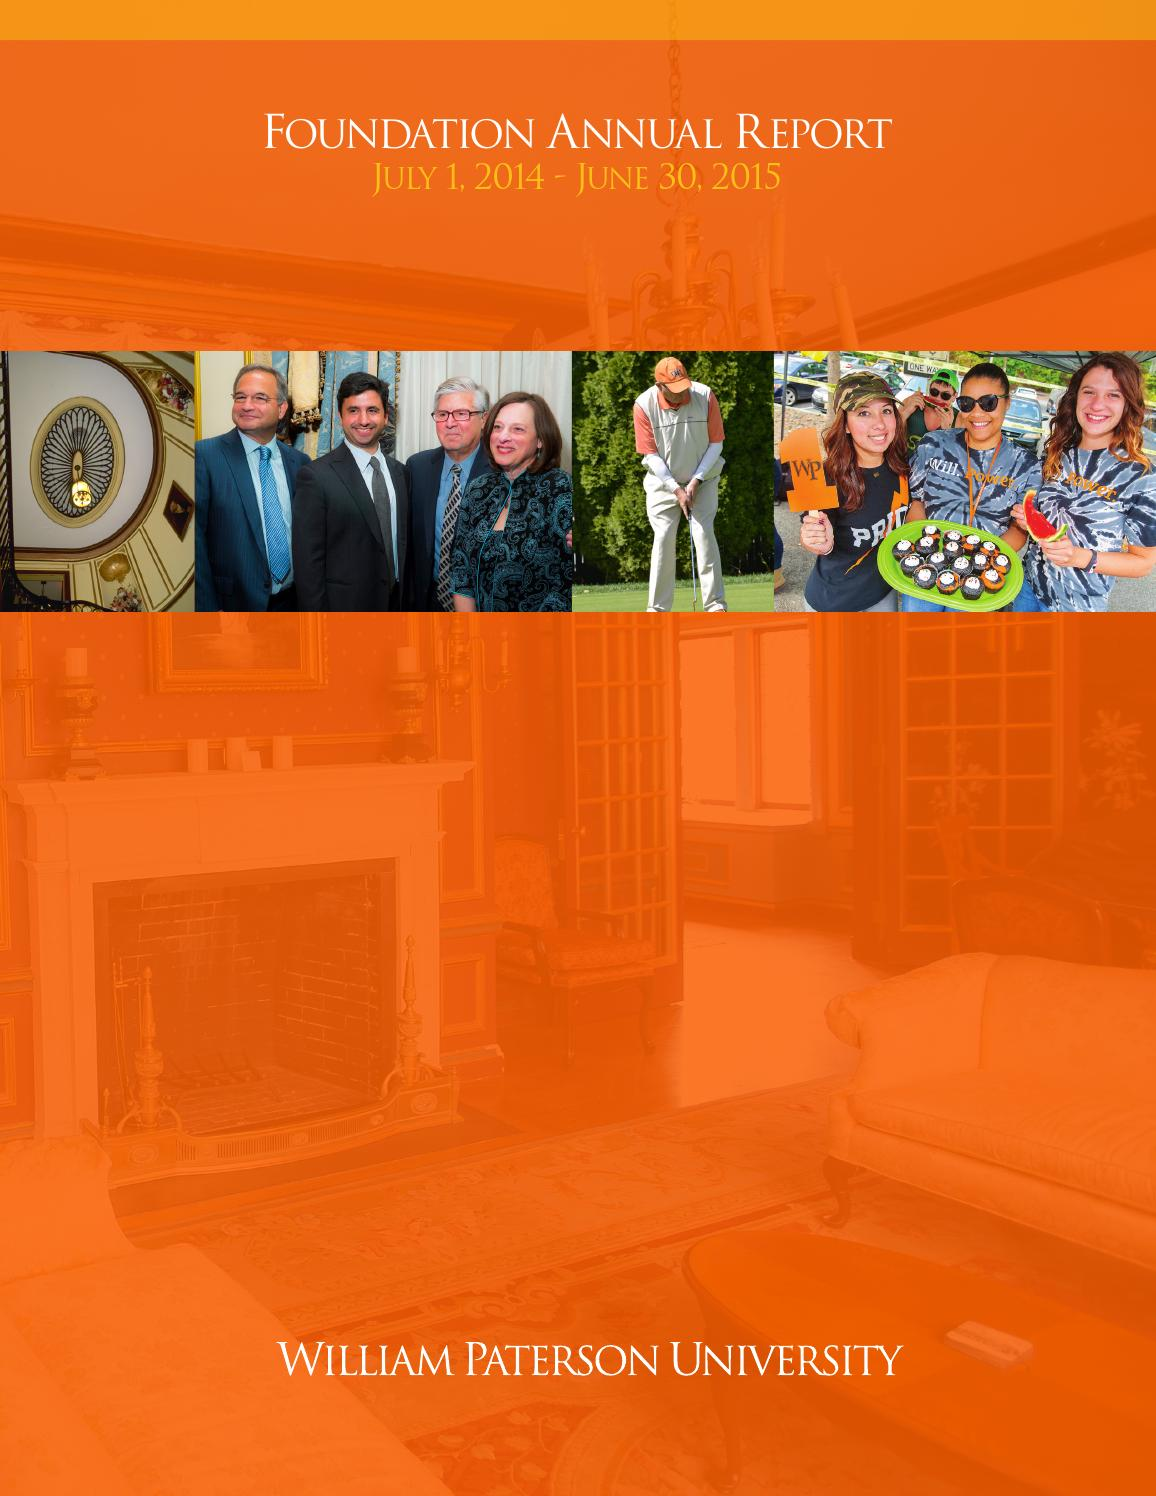 William Paterson Foundation Annual Report 2014-2015 by